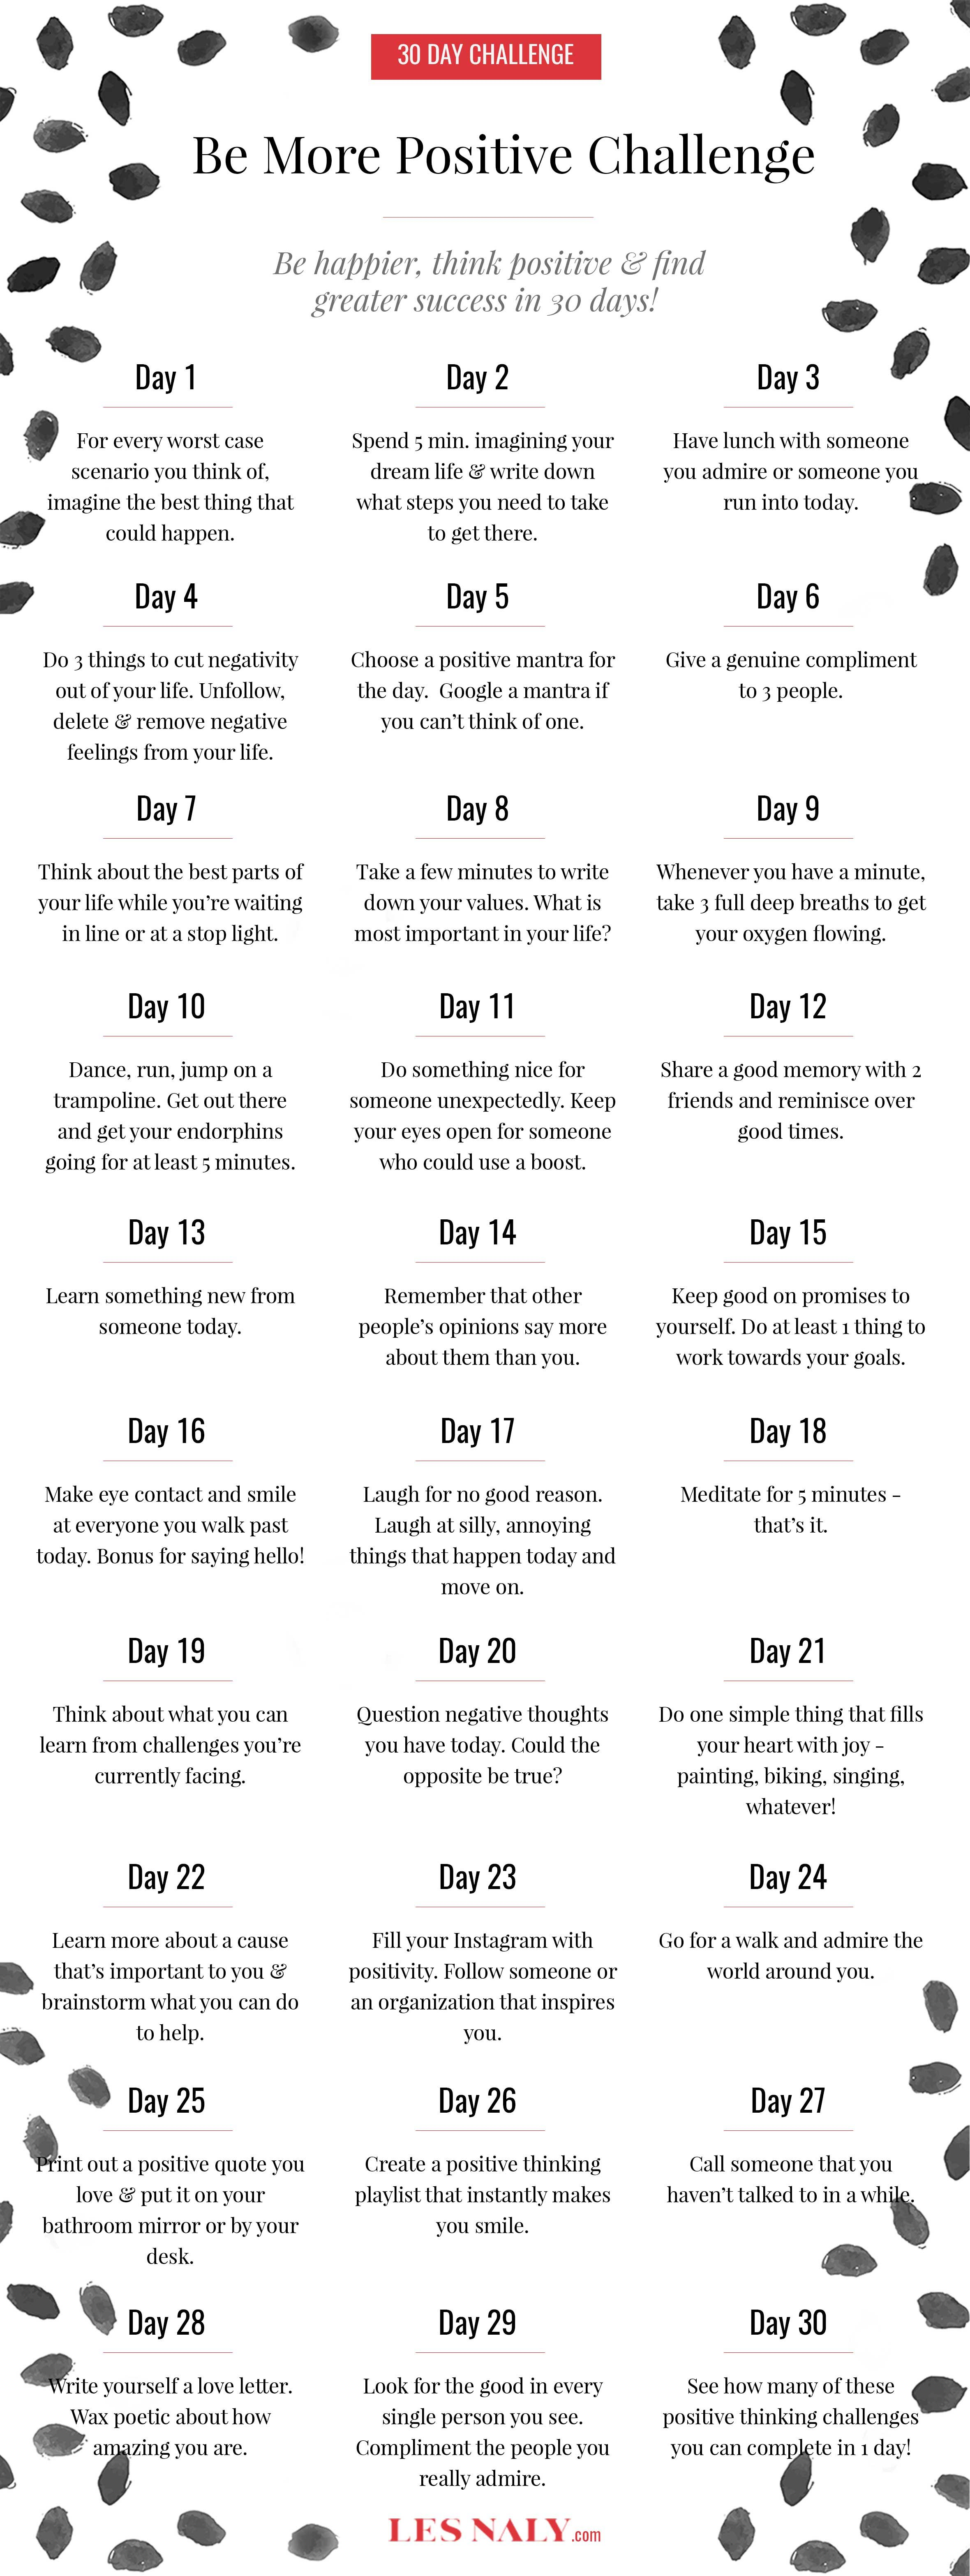 Join Greatists 30-Day Self-Care Challenge